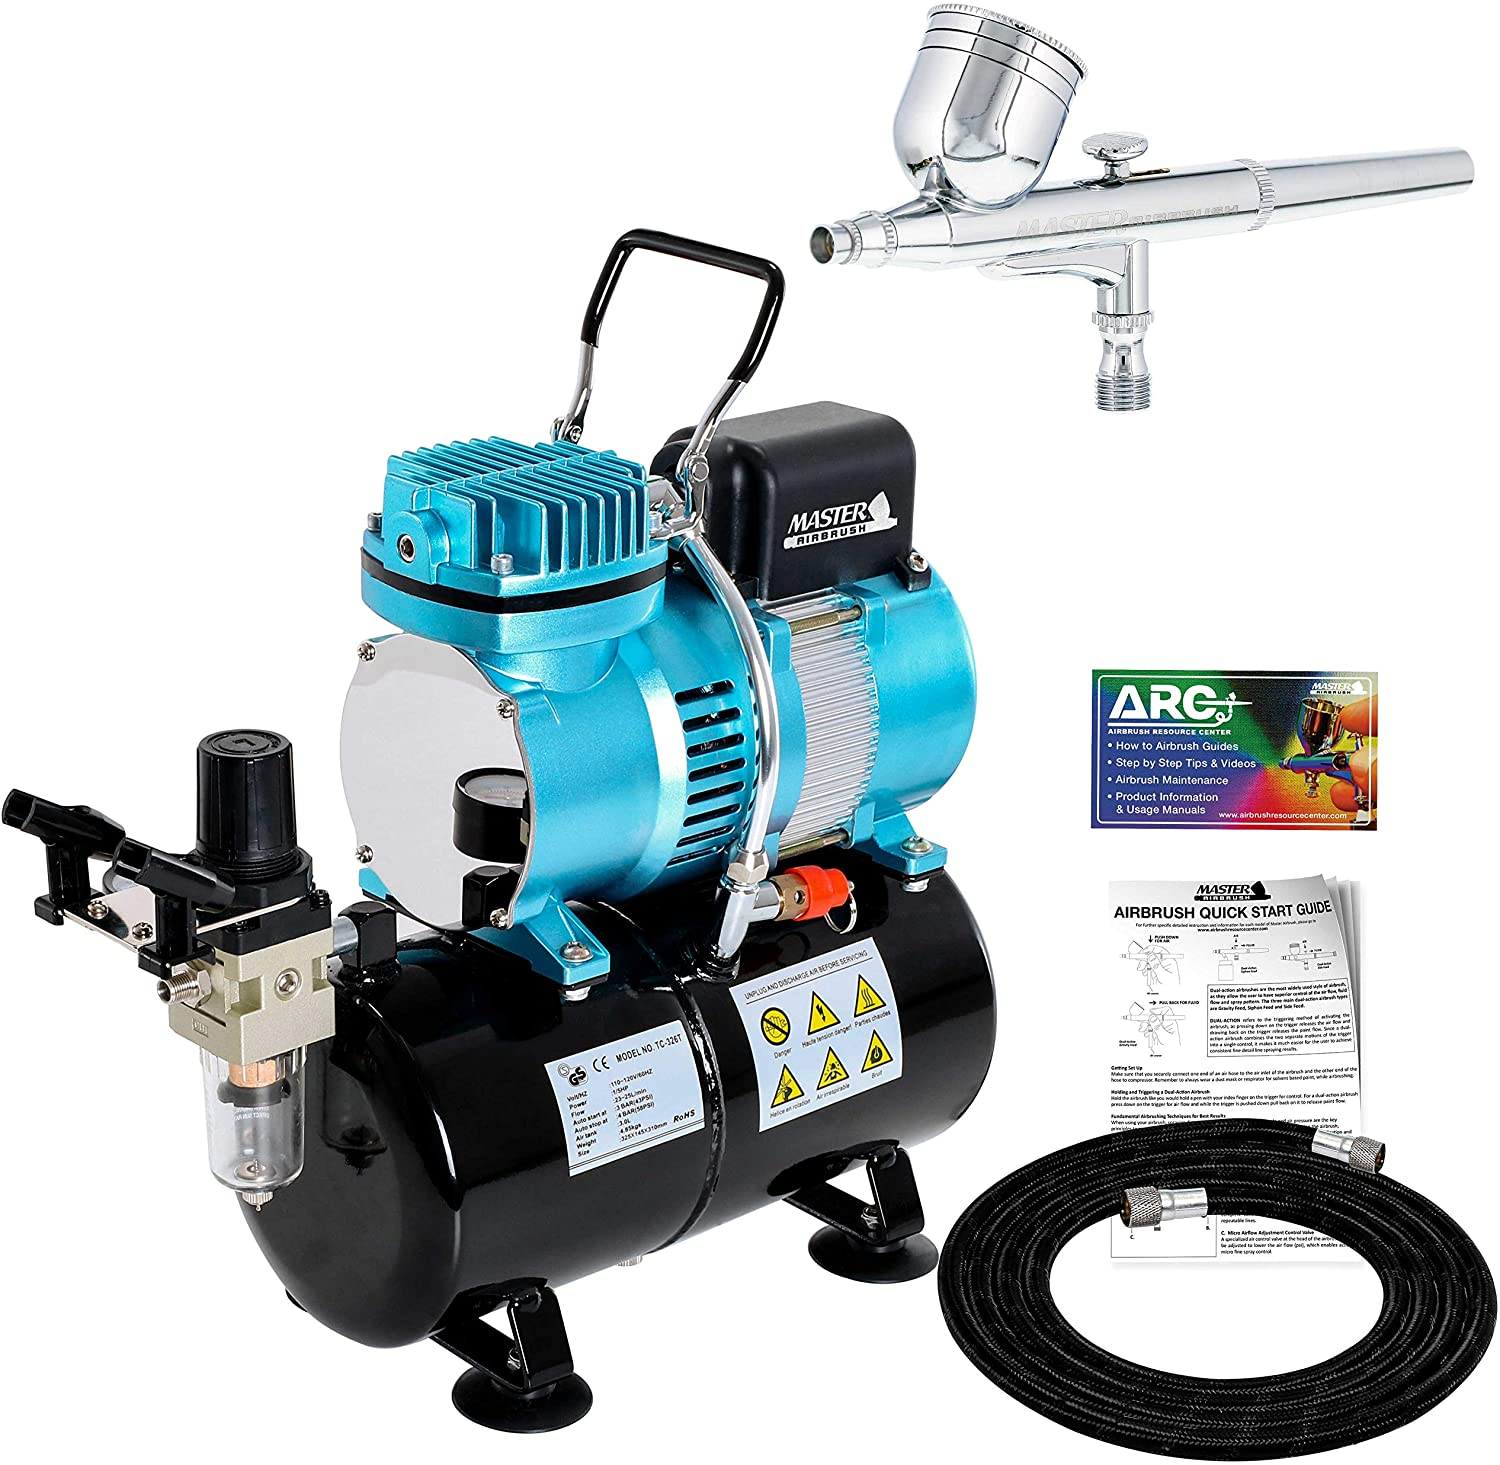 Master Airbrush Cool Runner II Dual Fan Air Storage Tank Compressor System Kit with a G22 Gravity Feed Airbrush Set with 0.3 mm Tip - Hose, Holder, How-to Guide - Hobby, Auto, Cake, Tattoo, Body Art